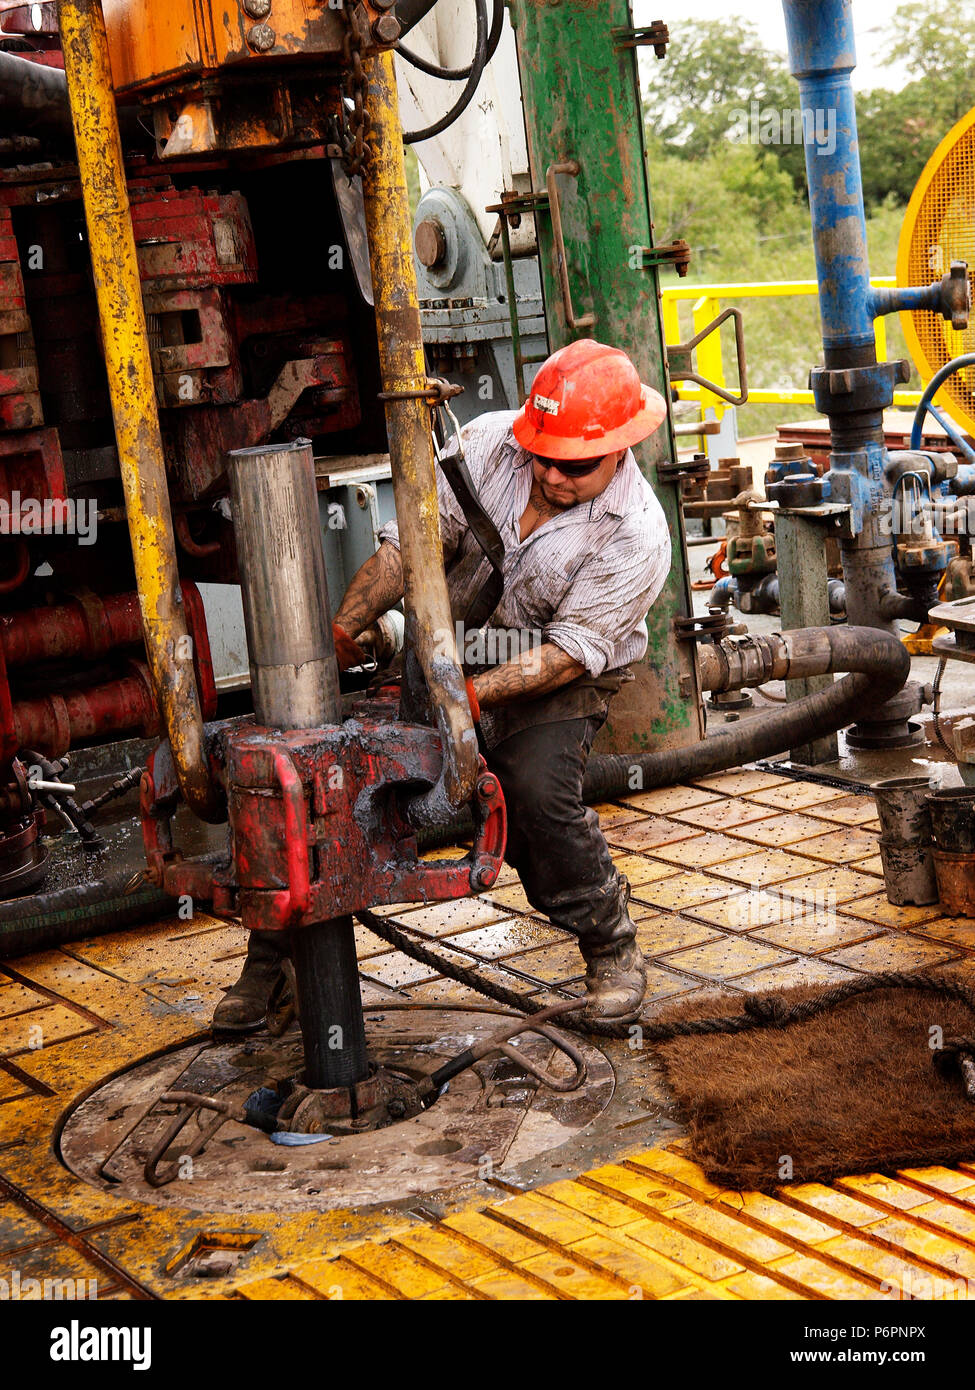 High Pressure fracturing and horizontal drilling in north Texas, Barnett Shale Field,started the petroleum industry success that has made the United States a leader in oil and natural gas. - Stock Image